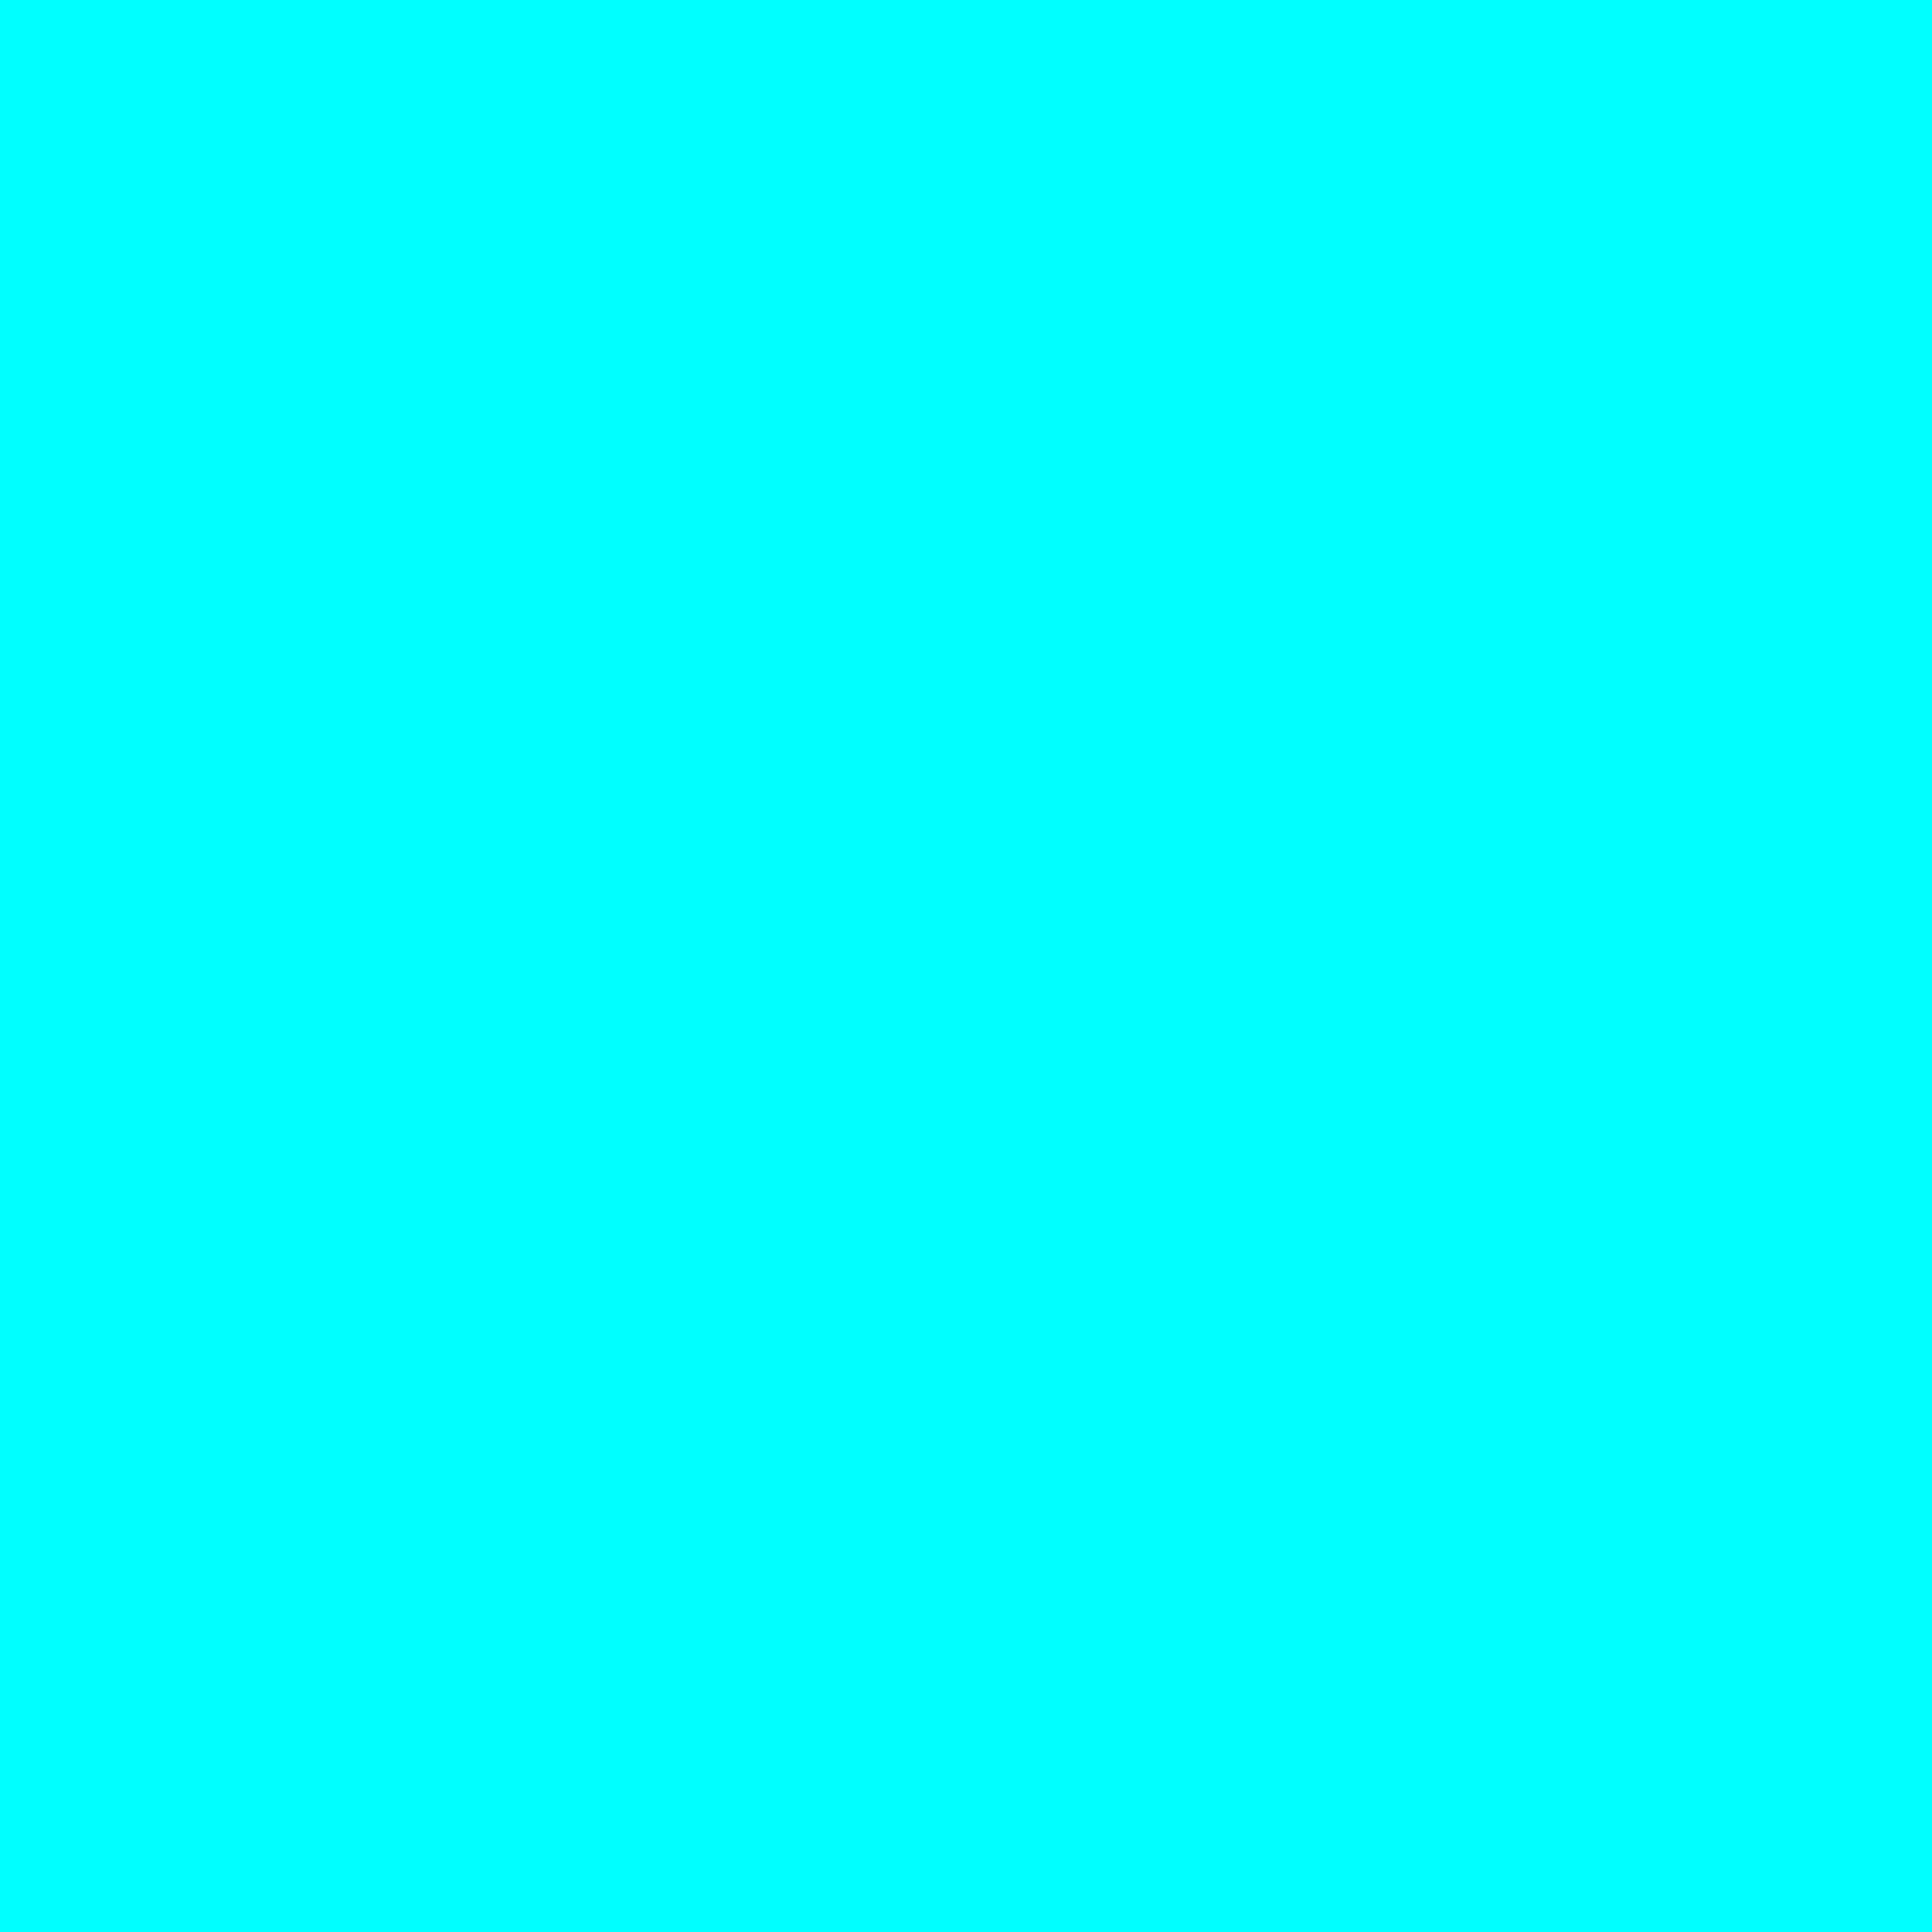 2732x2732 Electric Cyan Solid Color Background